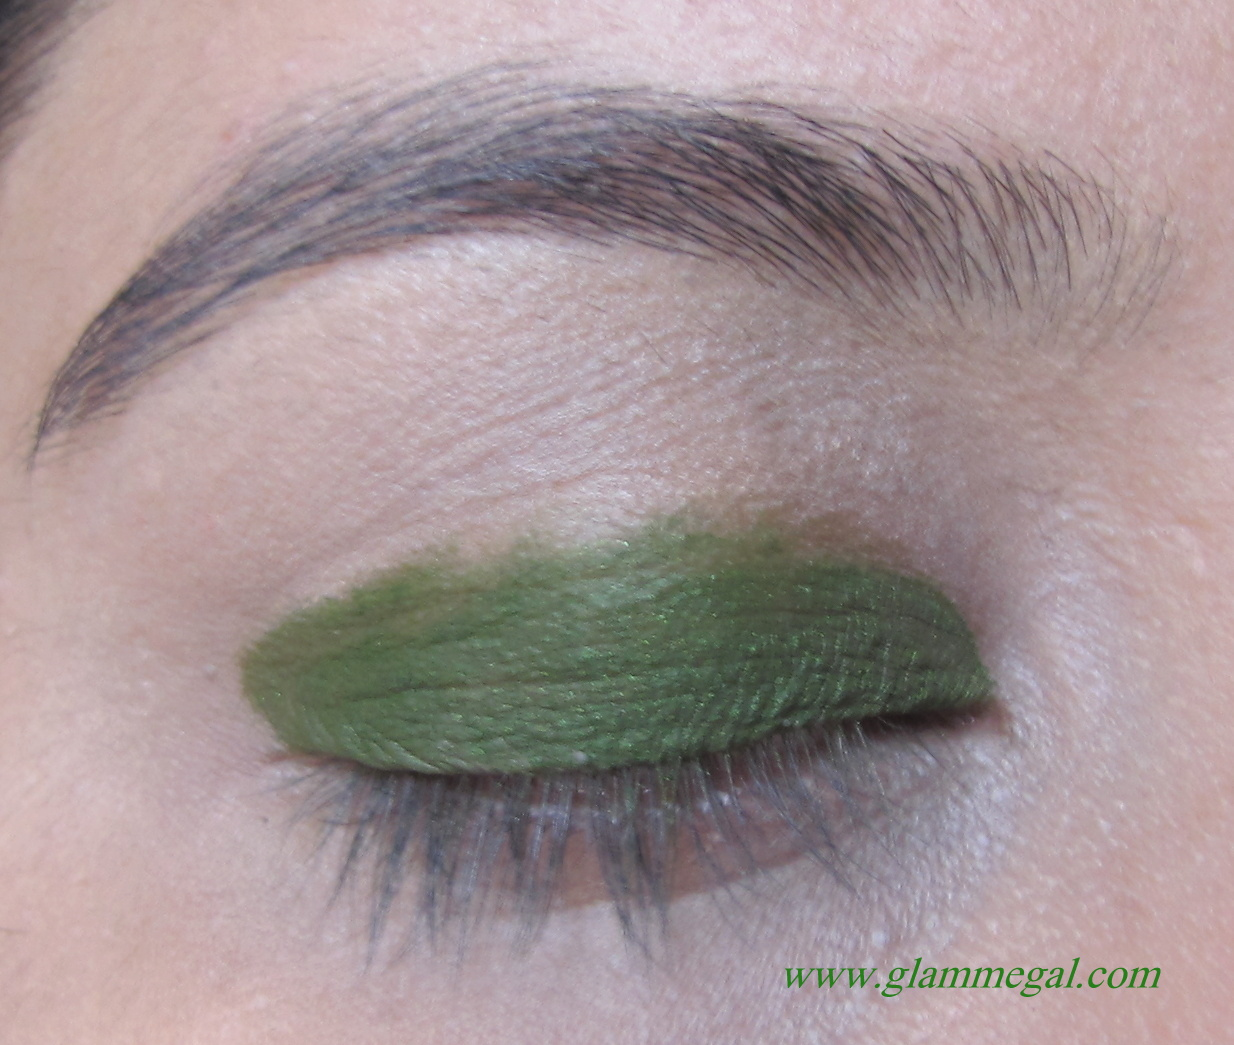 glam me gal: go green even on the eyes lotd using green